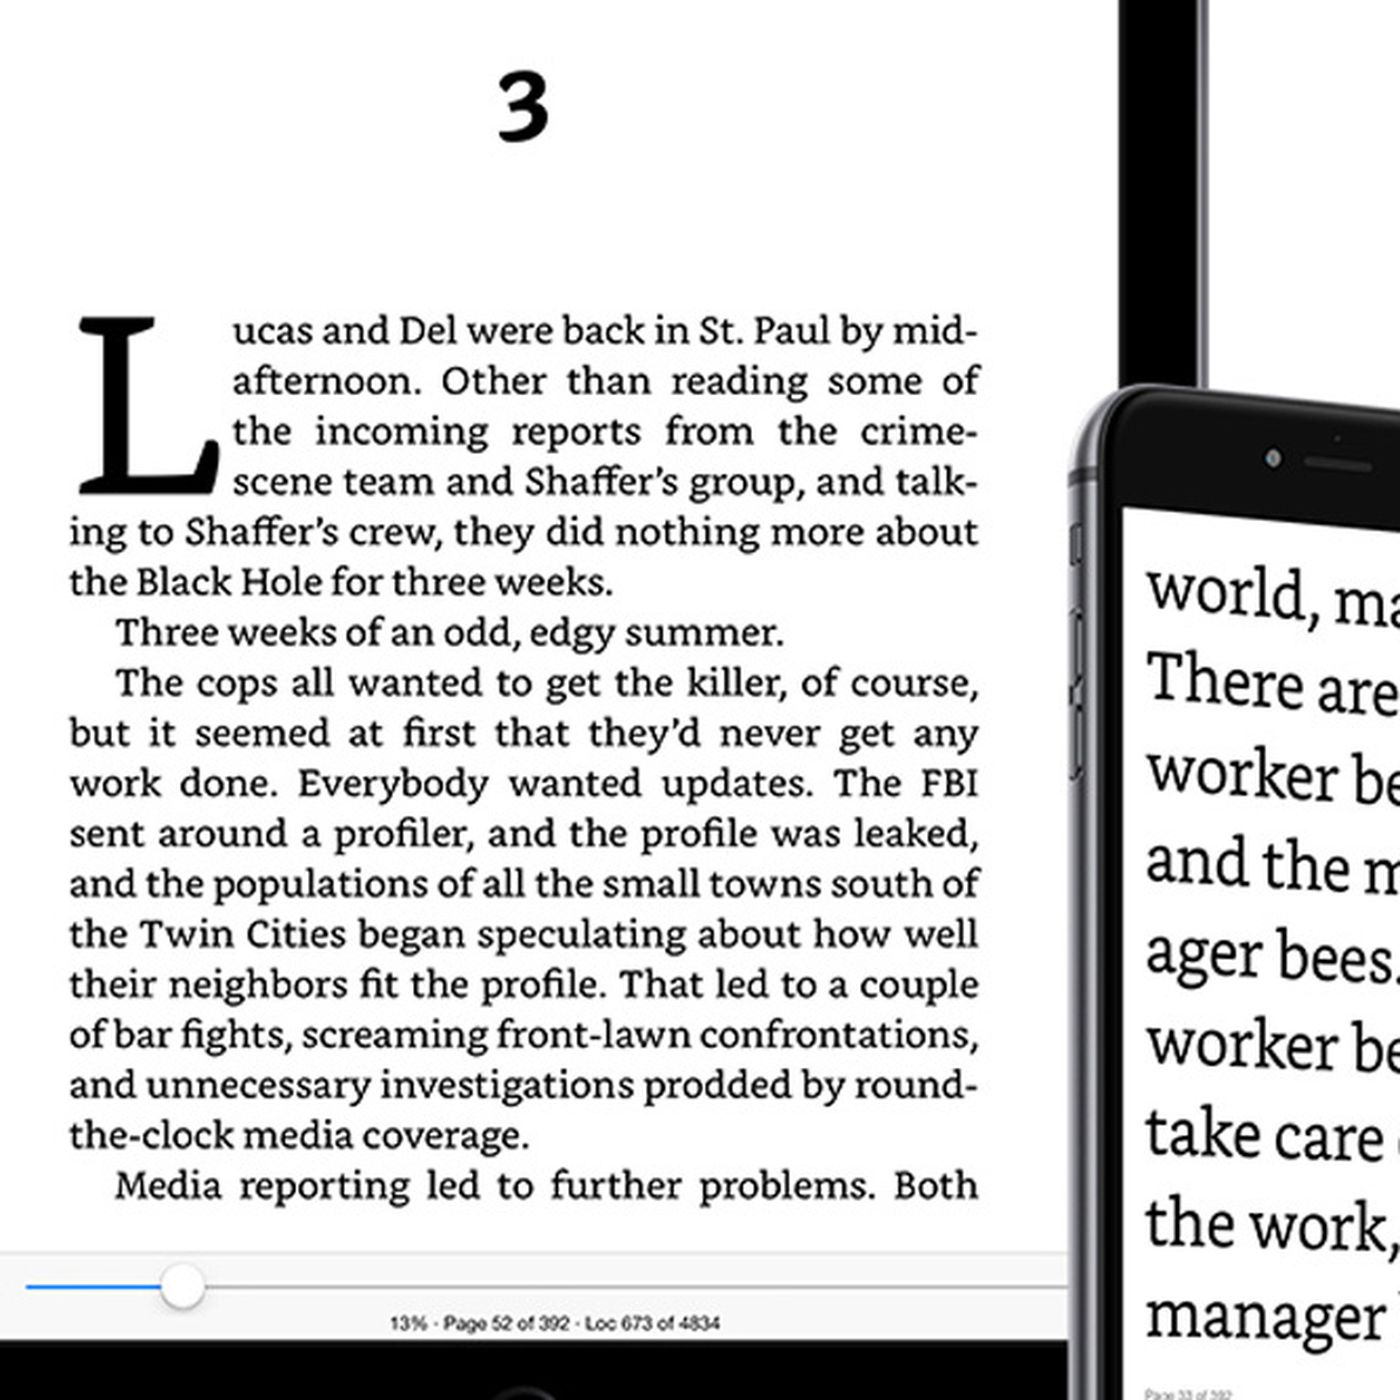 Amazon improves typeface and layout on Kindle for iPhone - The Verge